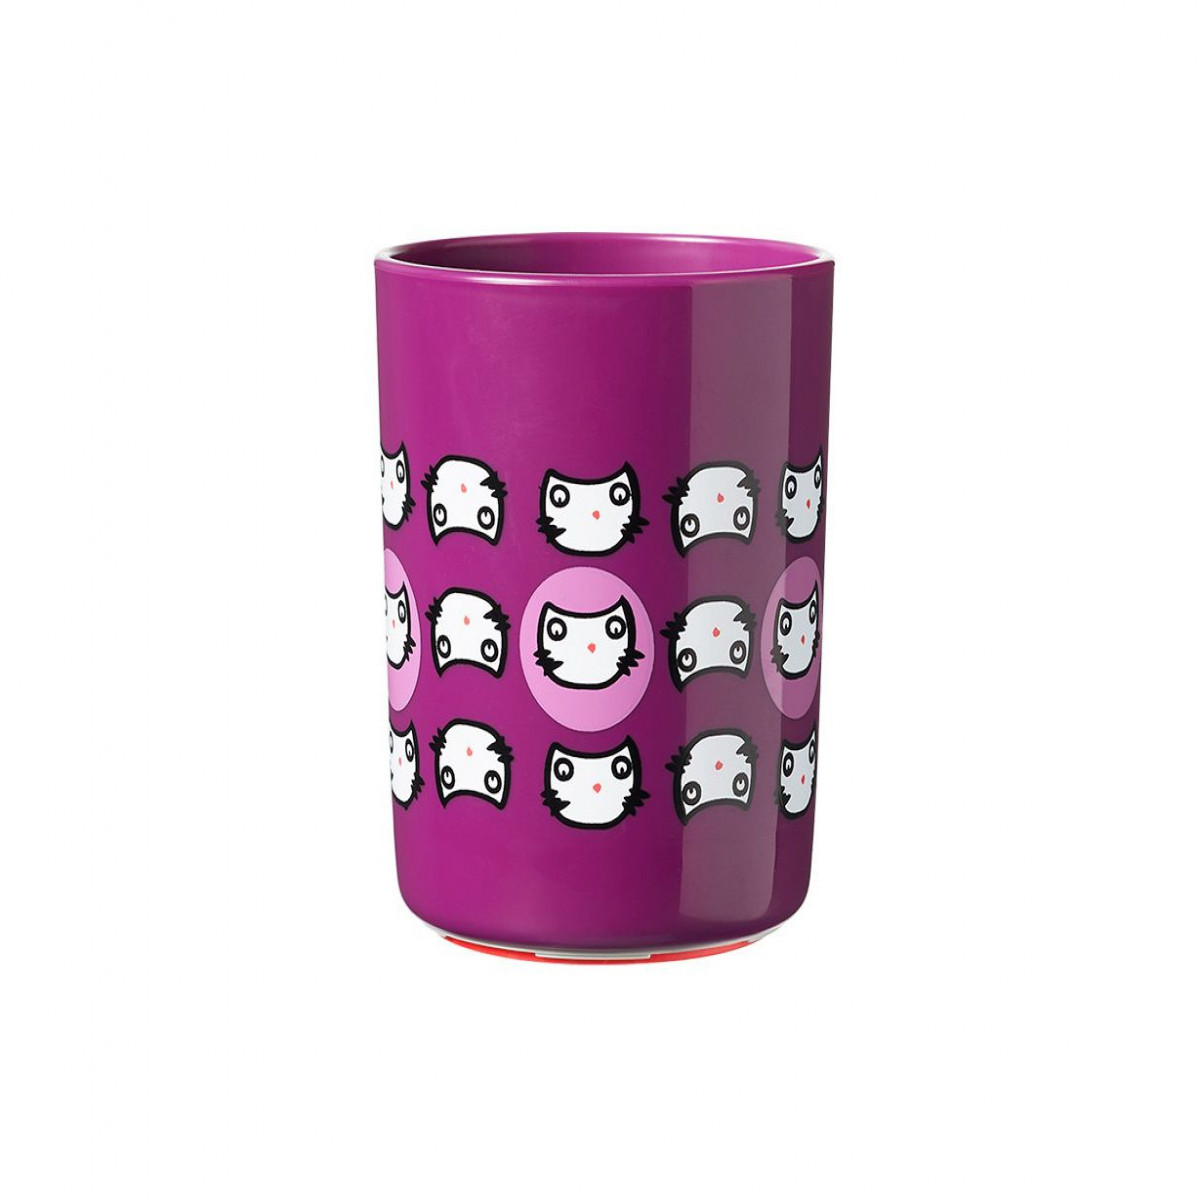 Vaso anti vuelco Tommee Tippee lila